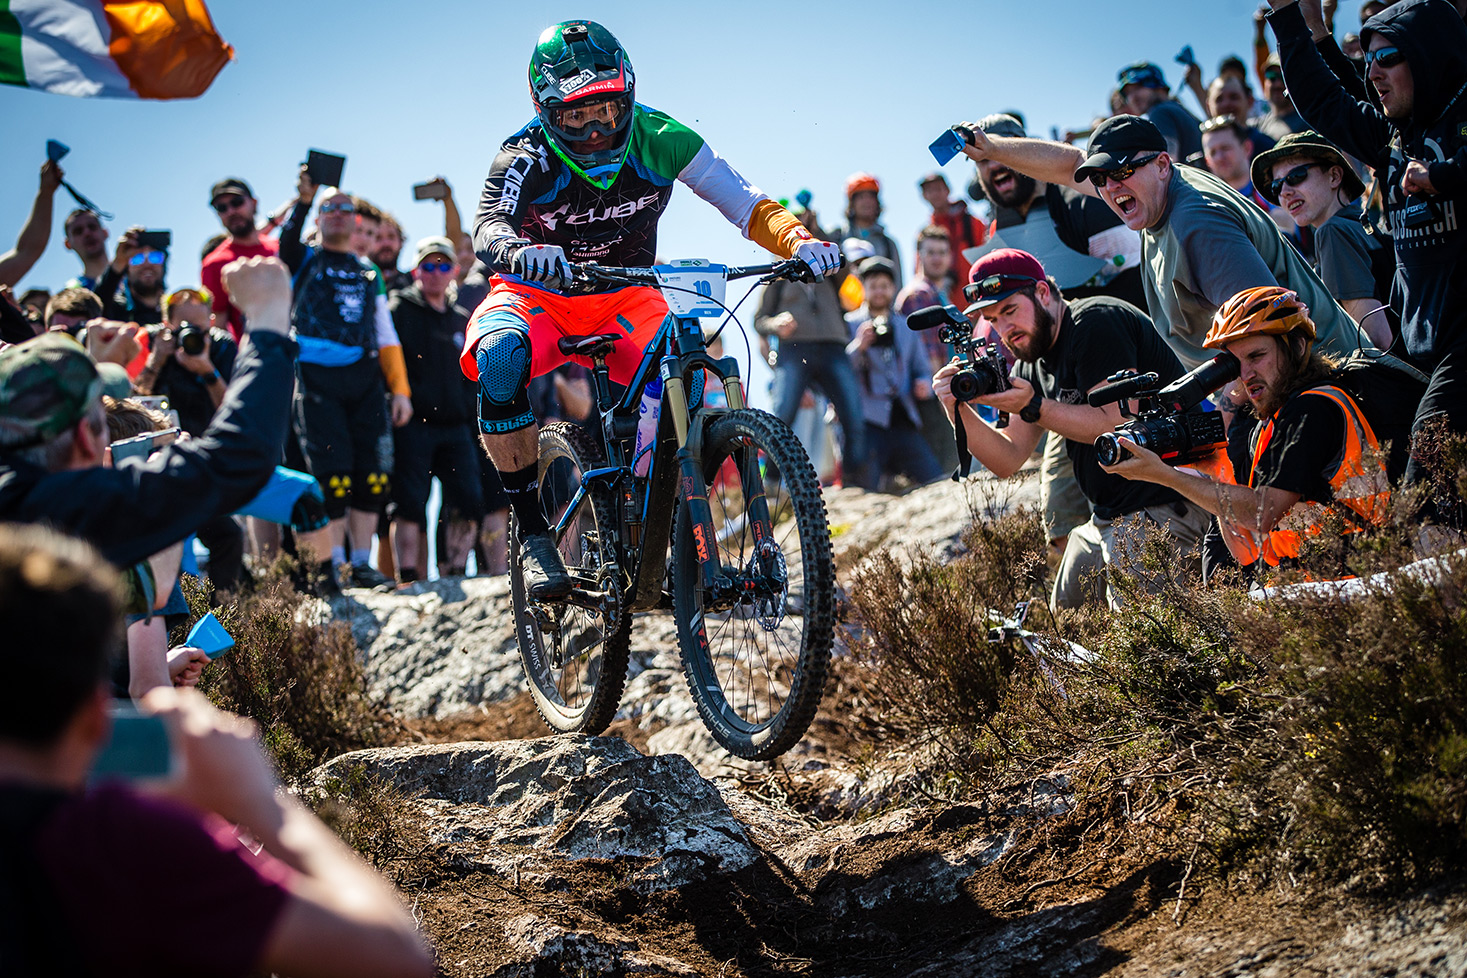 Greg Callaghan, vainqueur des Enduro World Series de Wicklow au guidon de son Stereo 140 C:62 29. © Matt Wragg